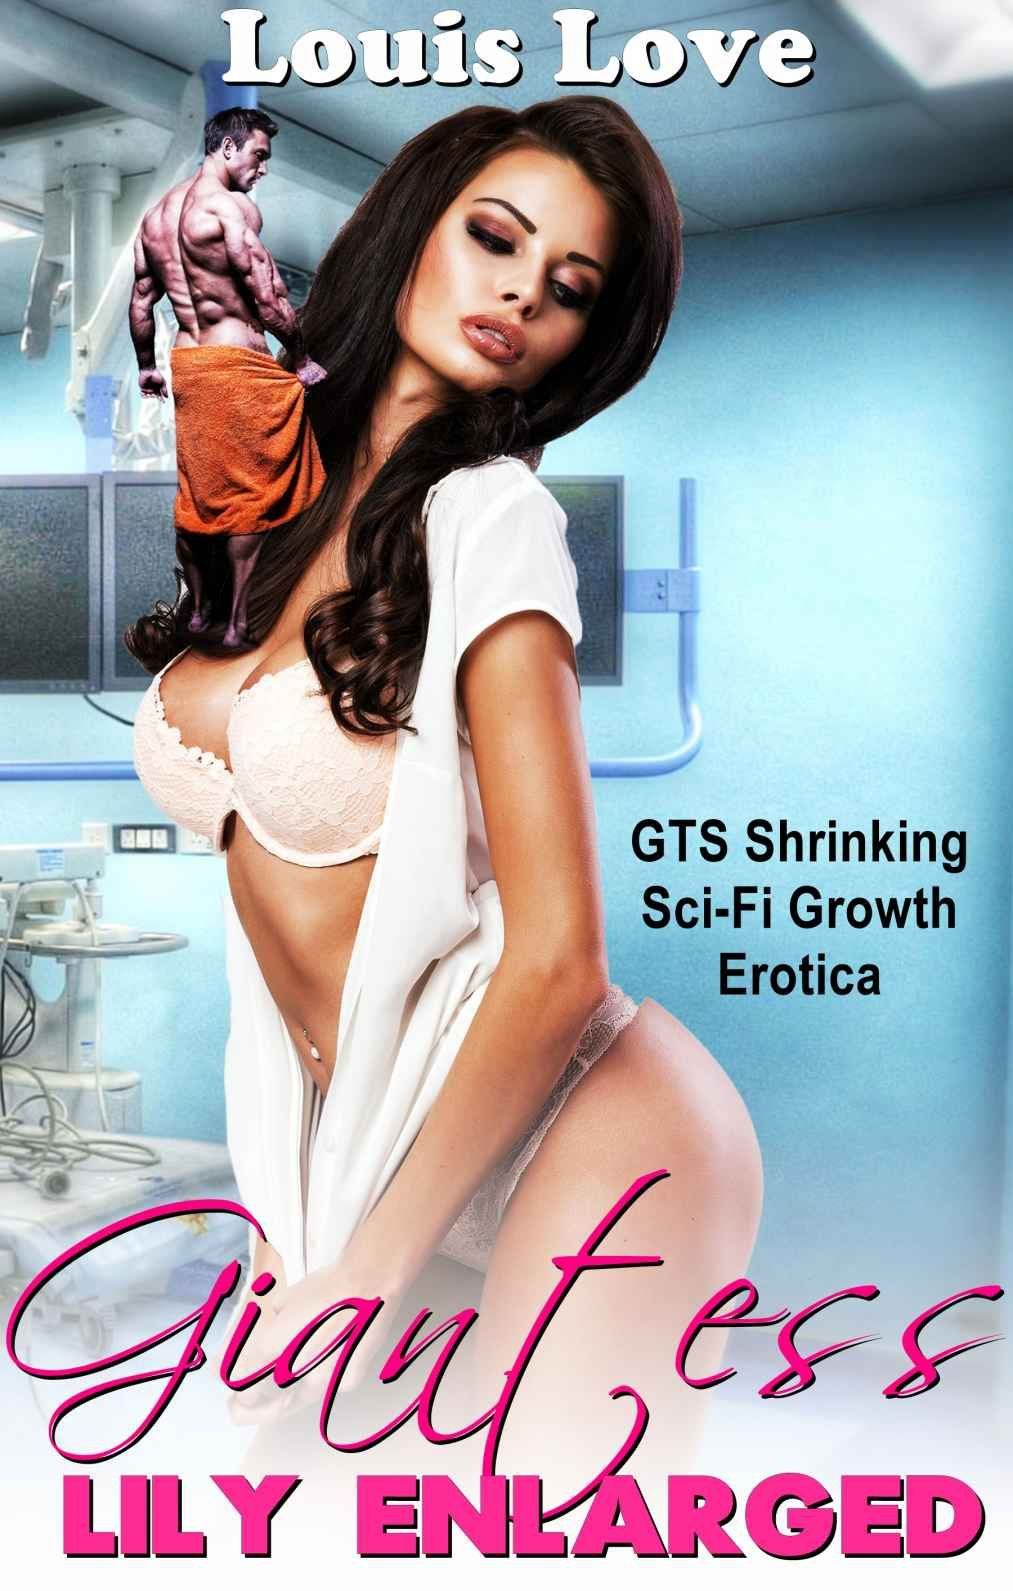 Giantess Lily Enlarged Gts Shrinking Sci Fi Growth Erotica Giantess Shrinking Fetish Book 7 Kindle Edition By Louis Love